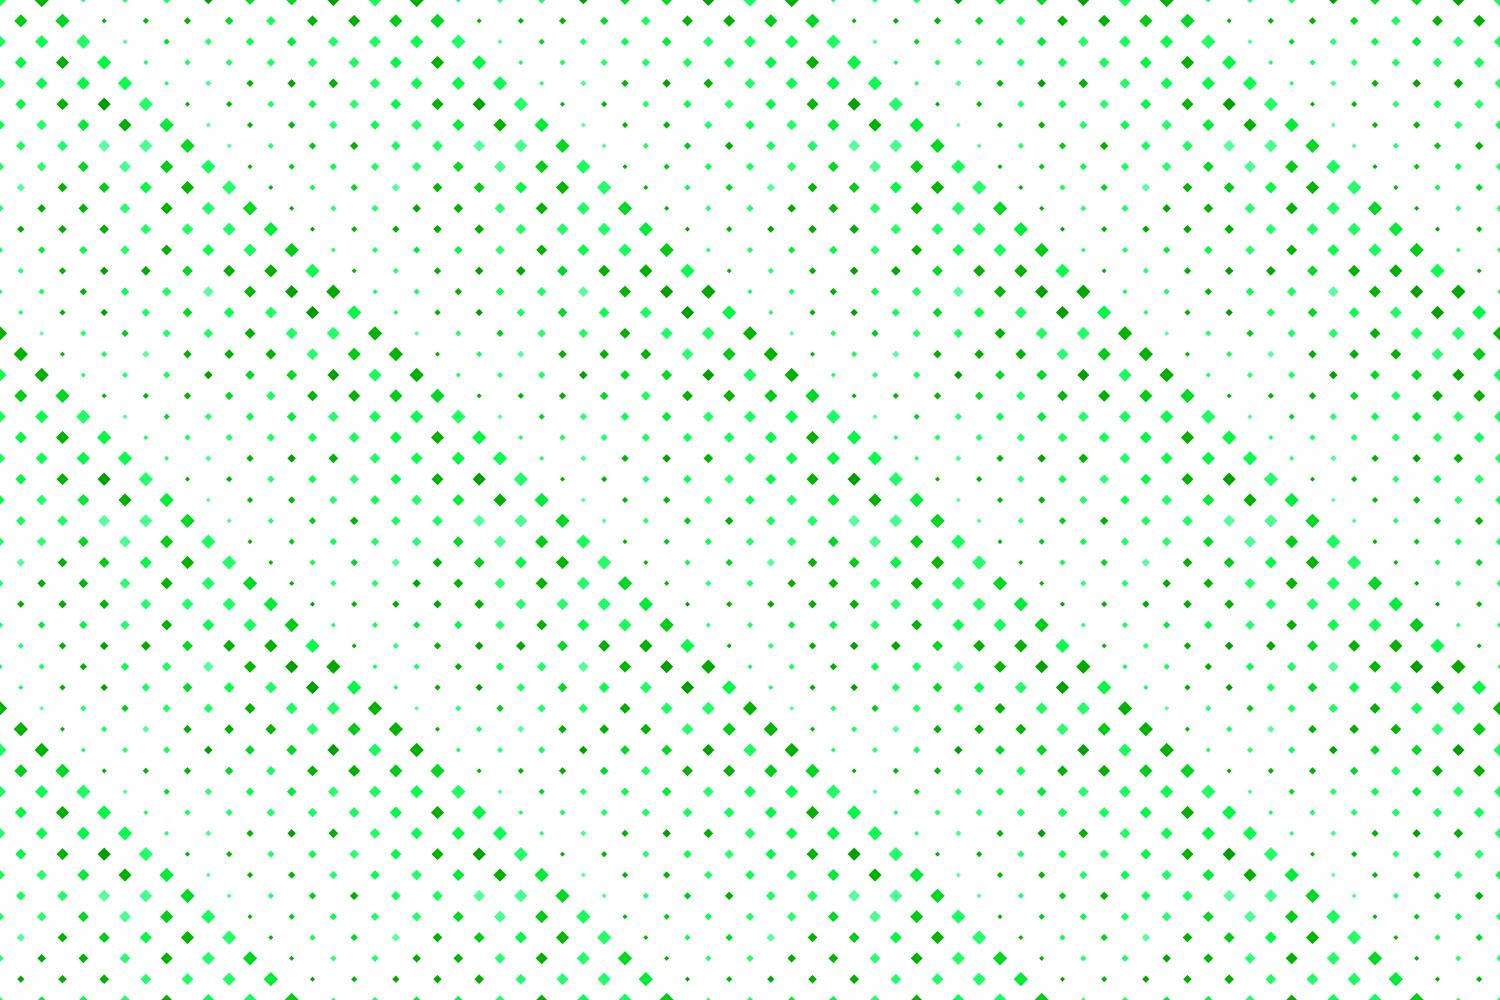 24 Seamless Green Square Patterns example image 9